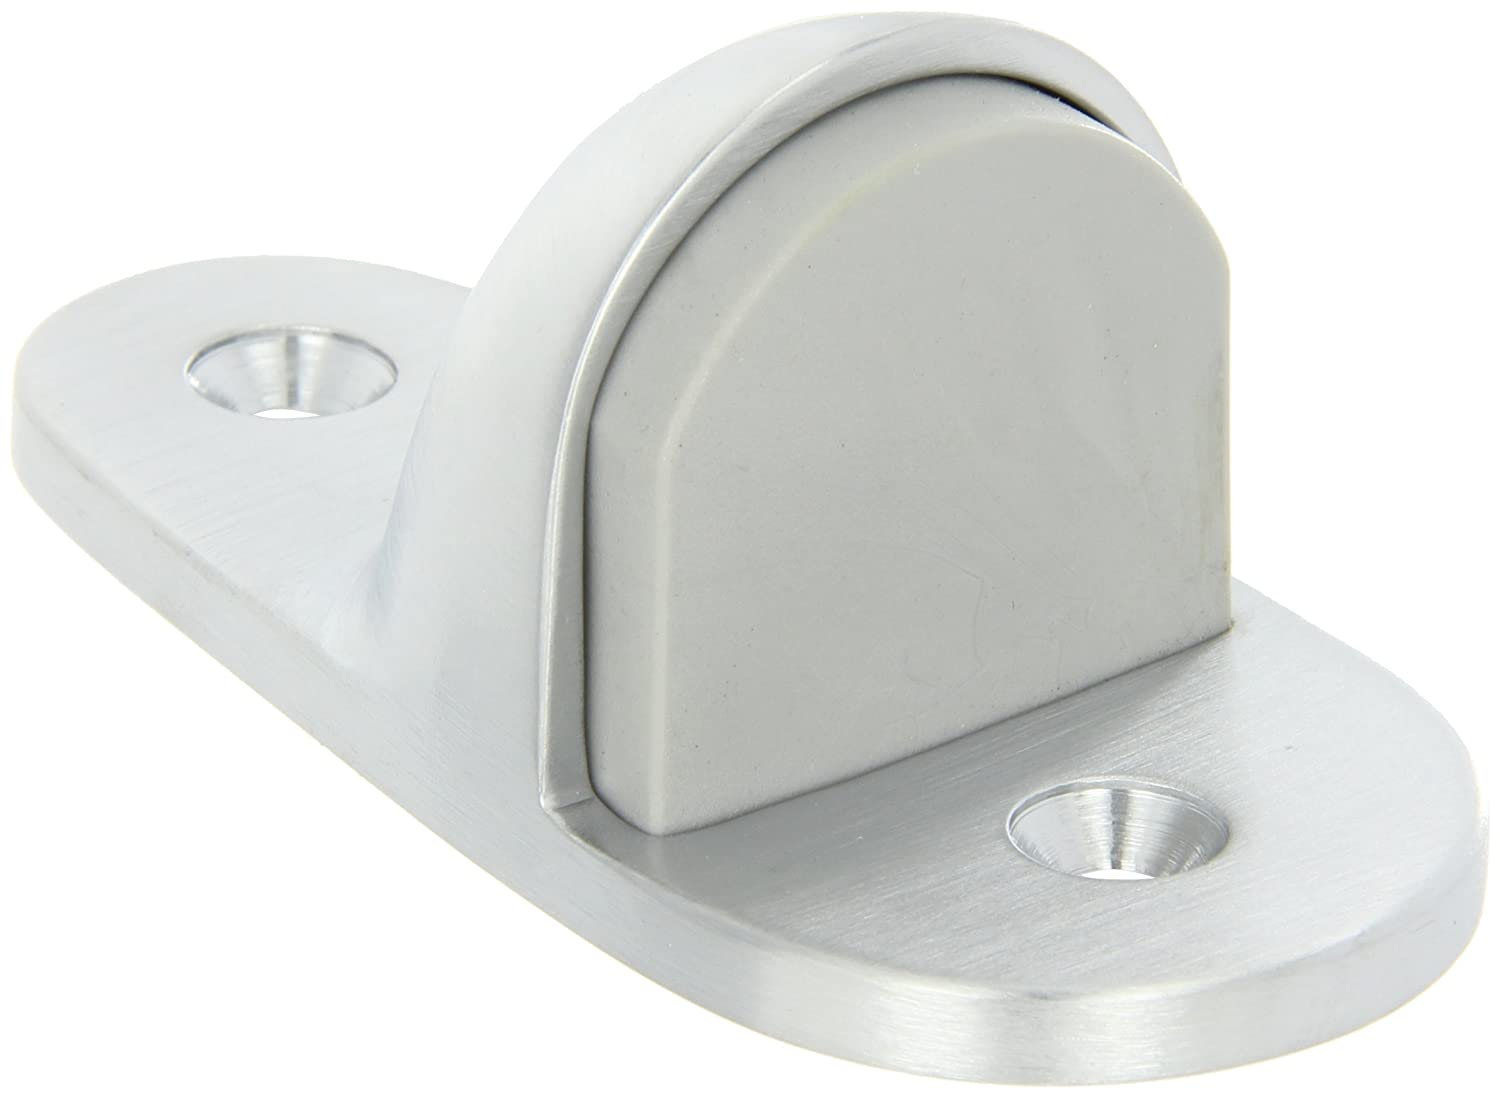 Satin Chrome Plated Finish #12 X 1-1//2 FH SMS Fastener with Plastic Anchor and 2-24 x 1 FH MS Fastener with Lead Anchor 2 Base Width x 4 Base Length 1-11//16 Height Rockwood 445H.26D Brass Heavy Duty Door Stop